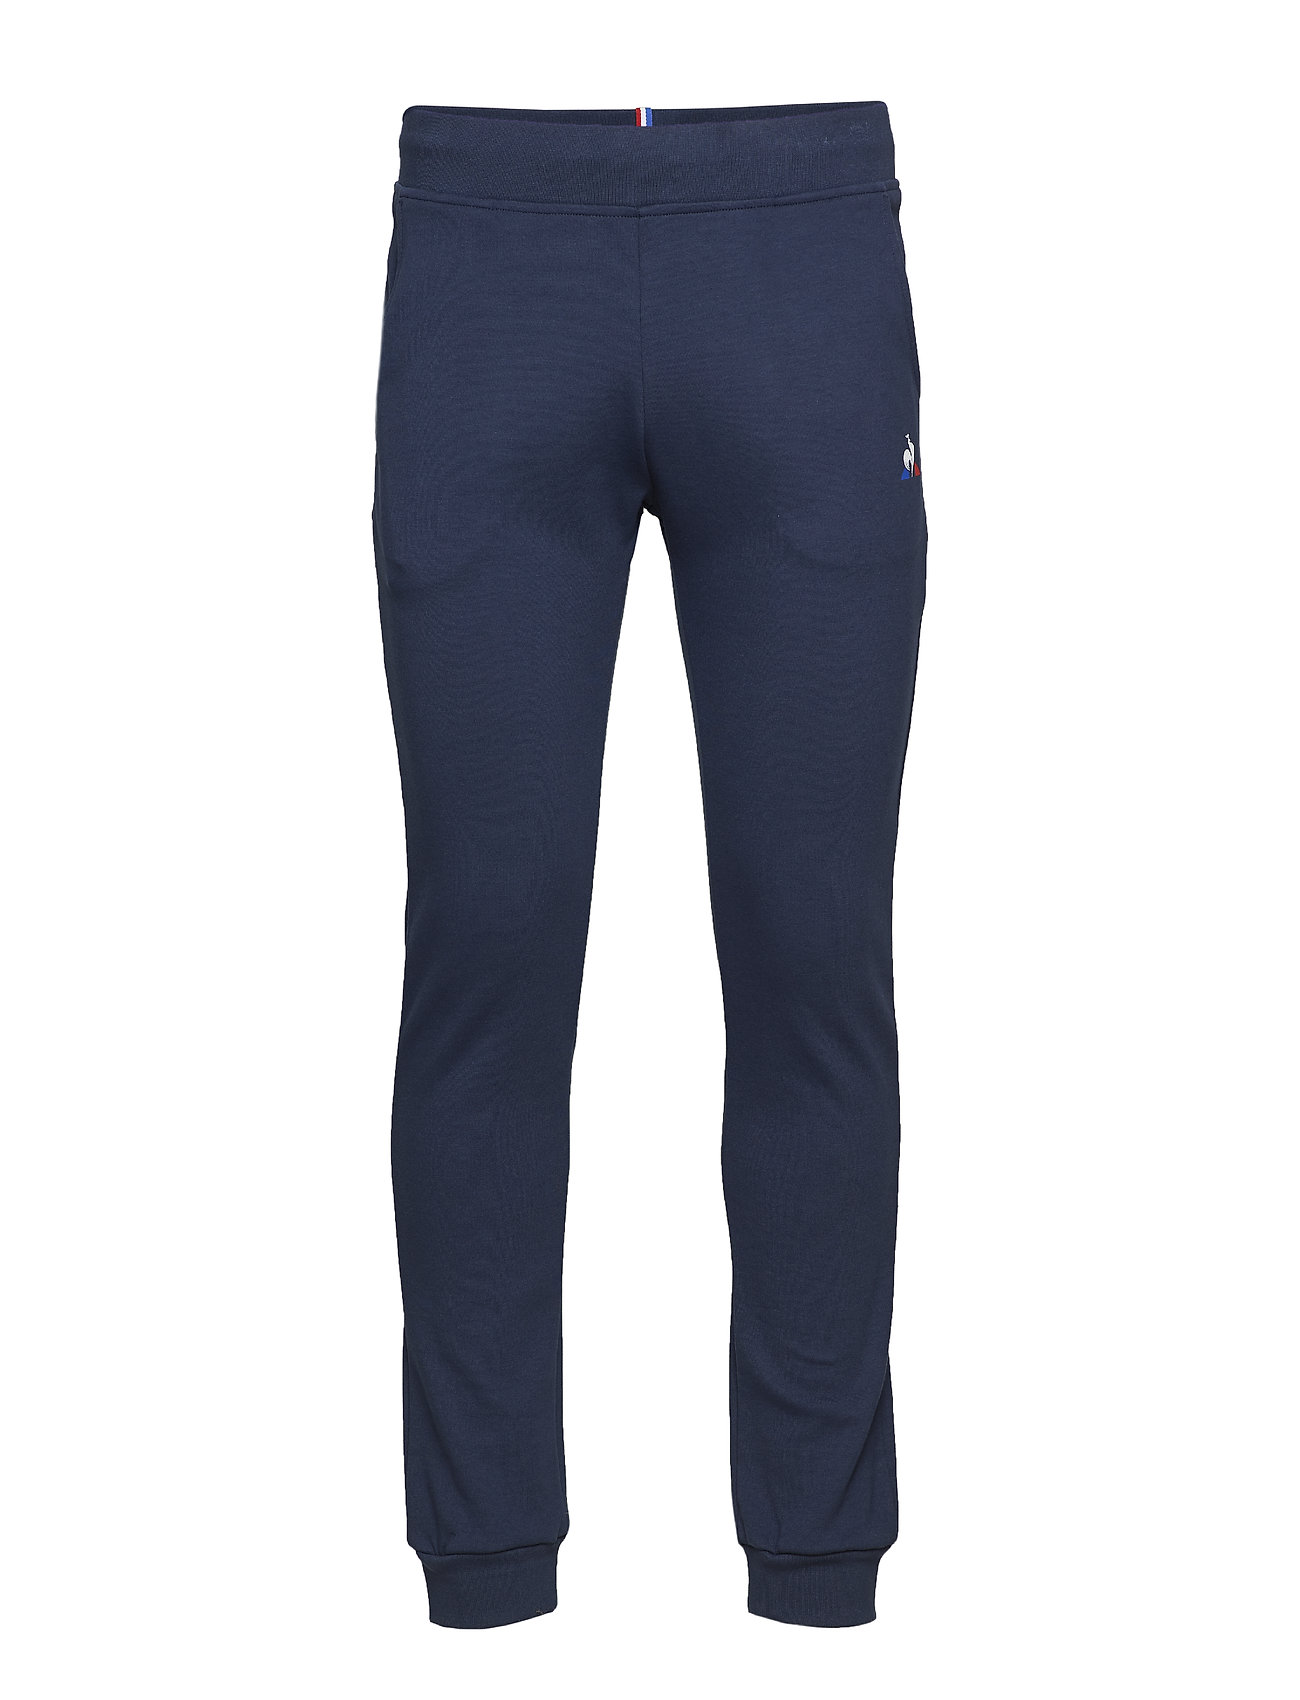 Le Coq Sportif ESS Pant Slim N°1 M - DRESS BLUES